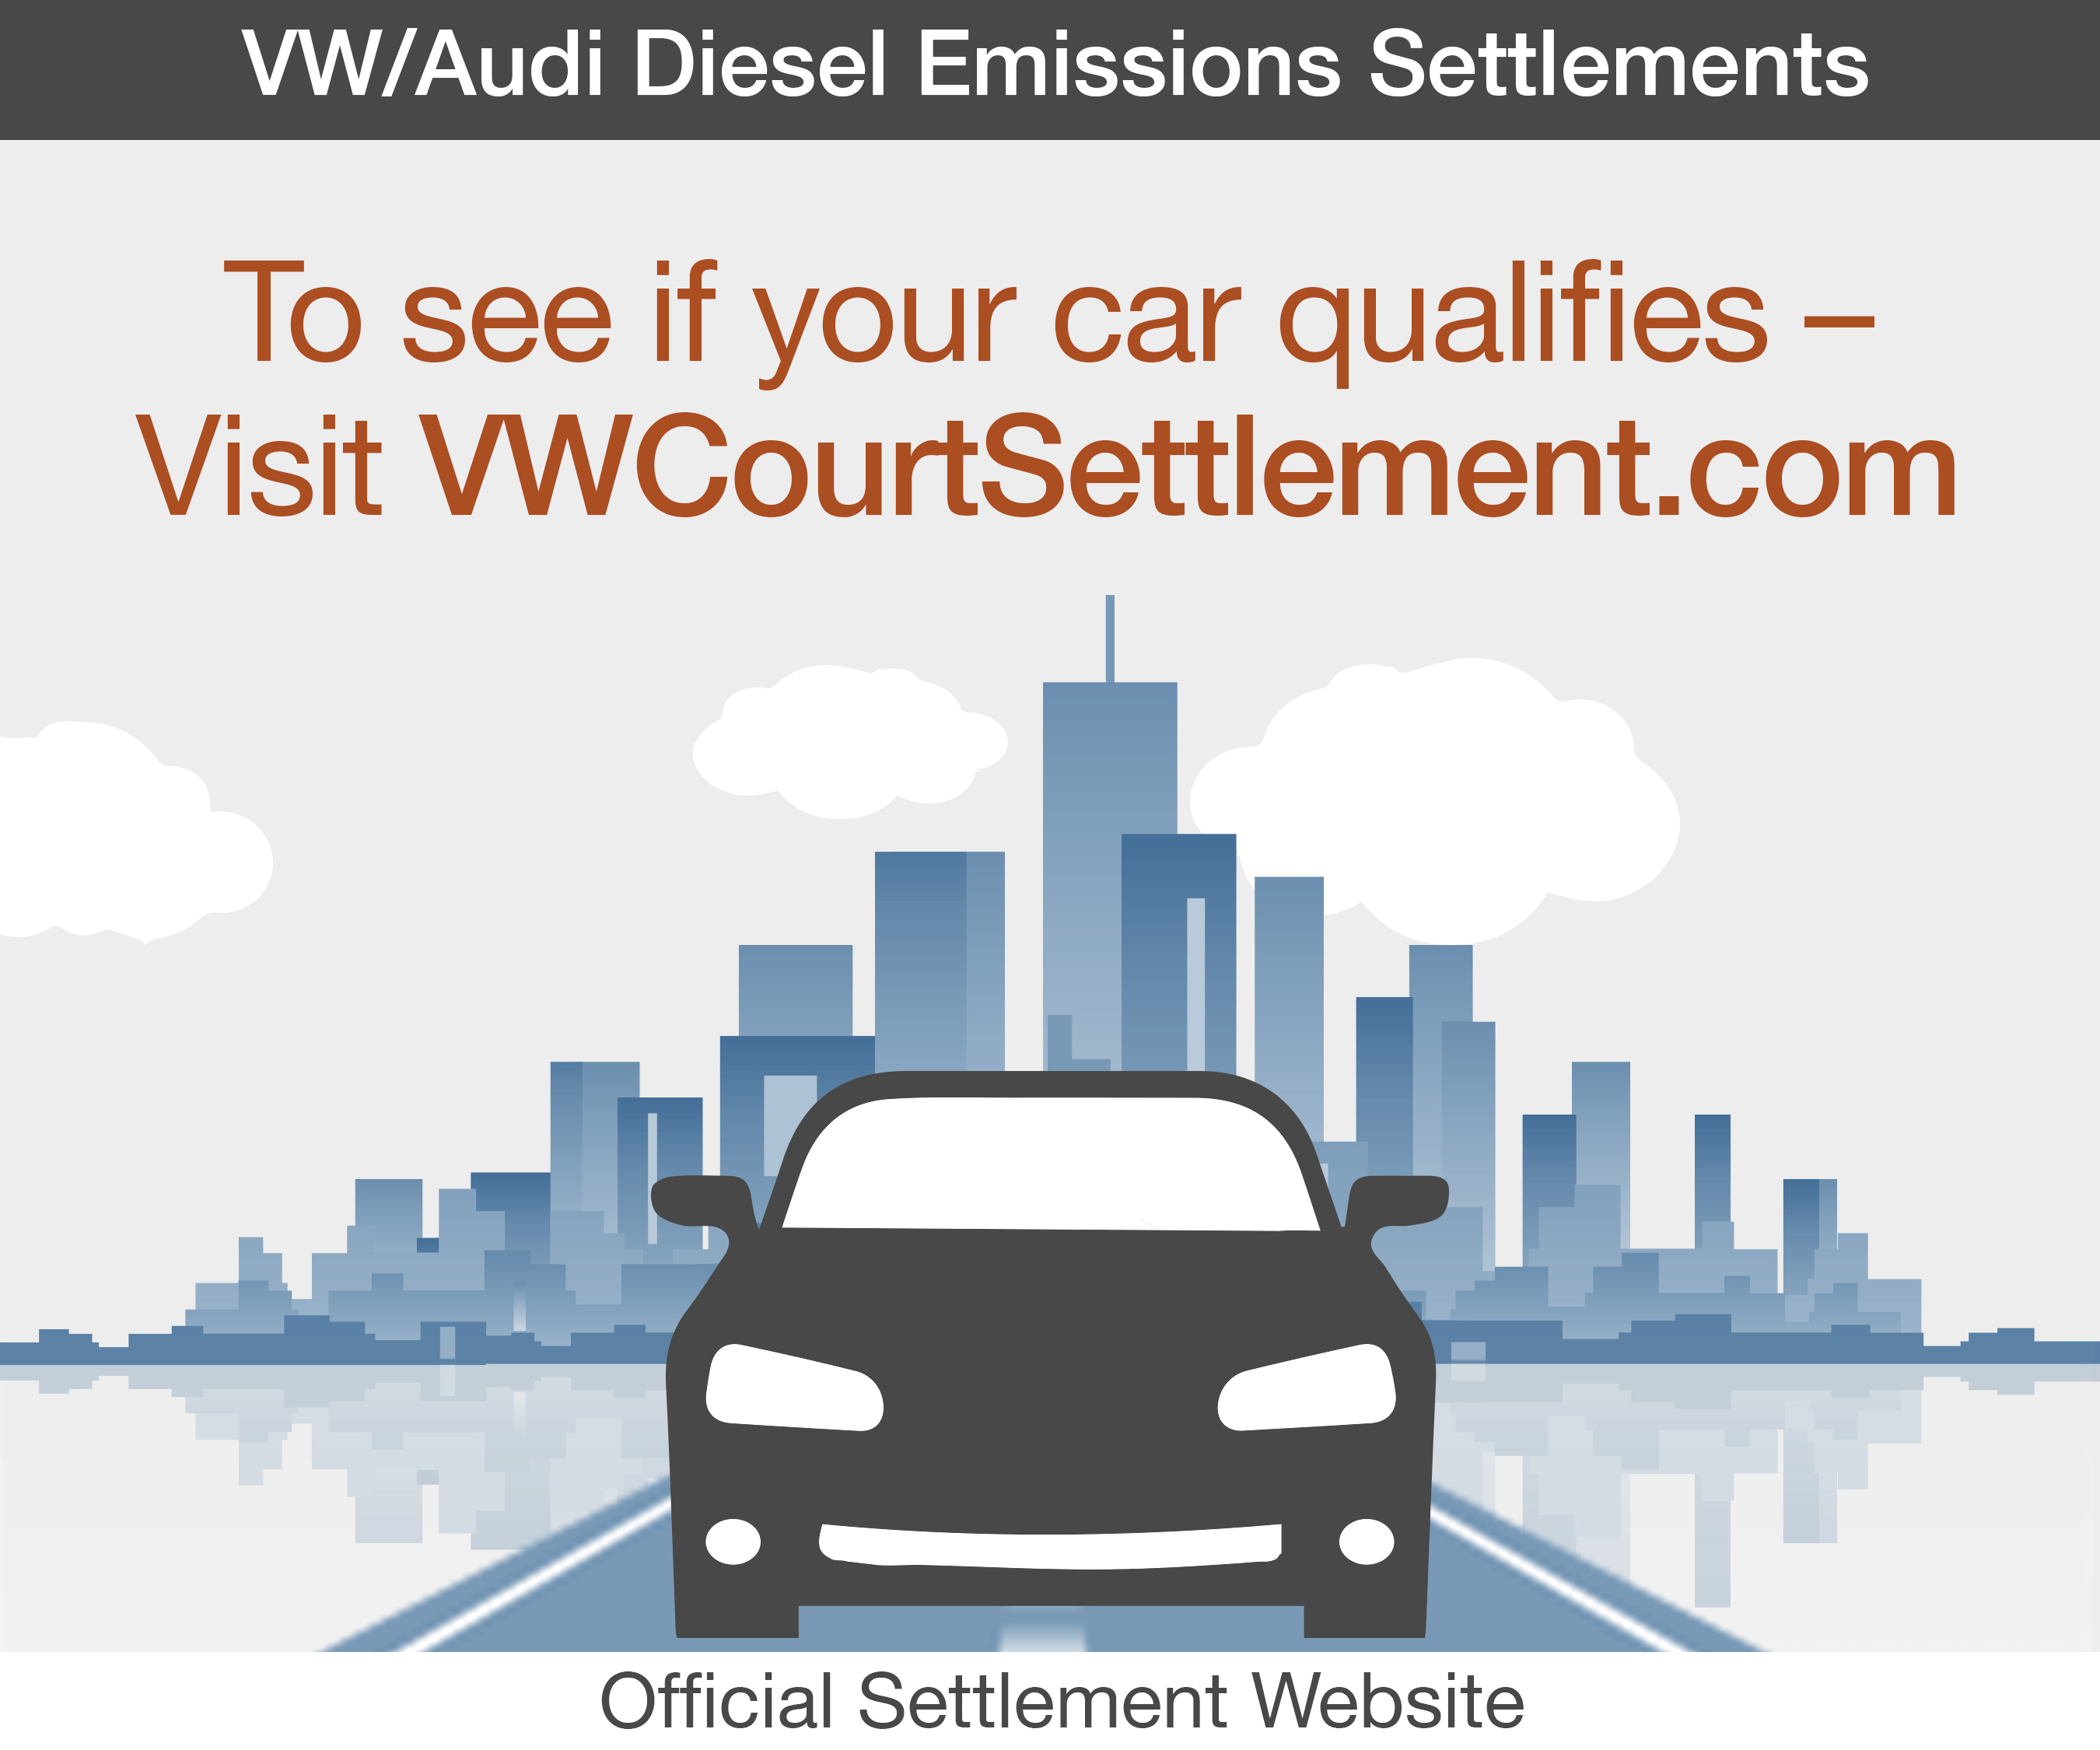 Eligible Volkswagen and Audi Owners and Lessees to Benefit from 2.0-Liter TDI Settlements